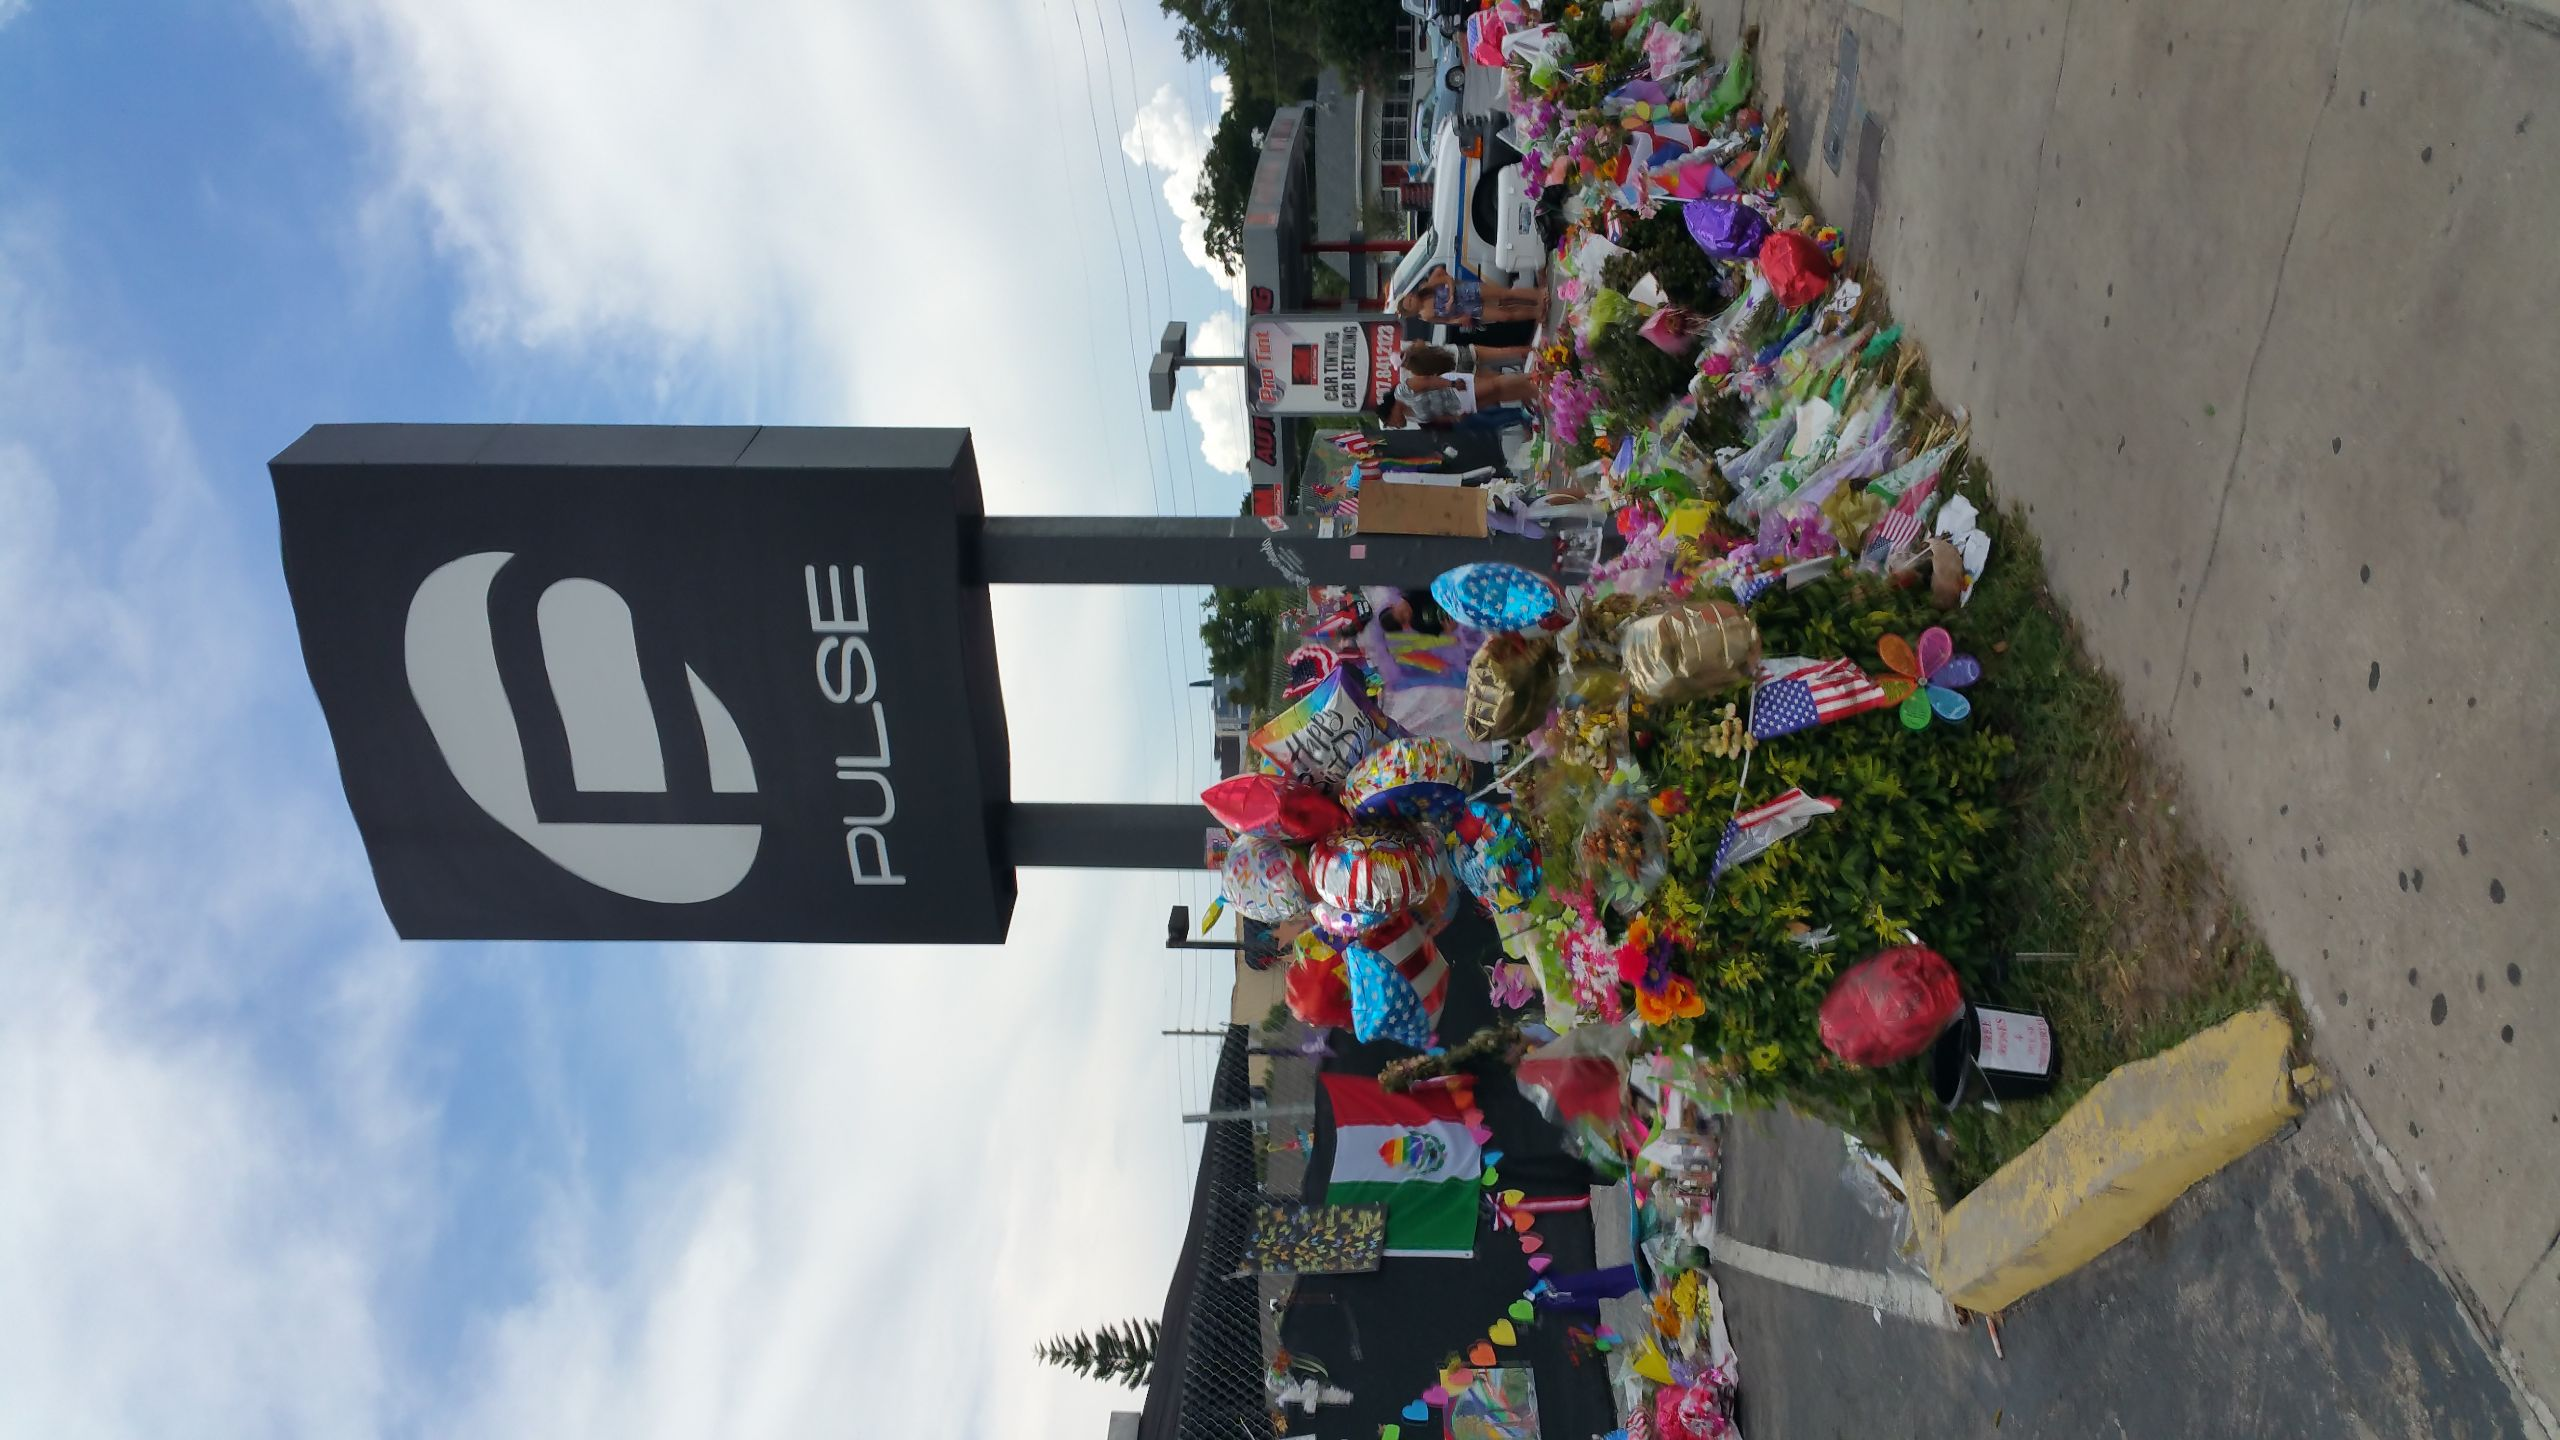 Pulse Nightclub in Orlando Florida 6